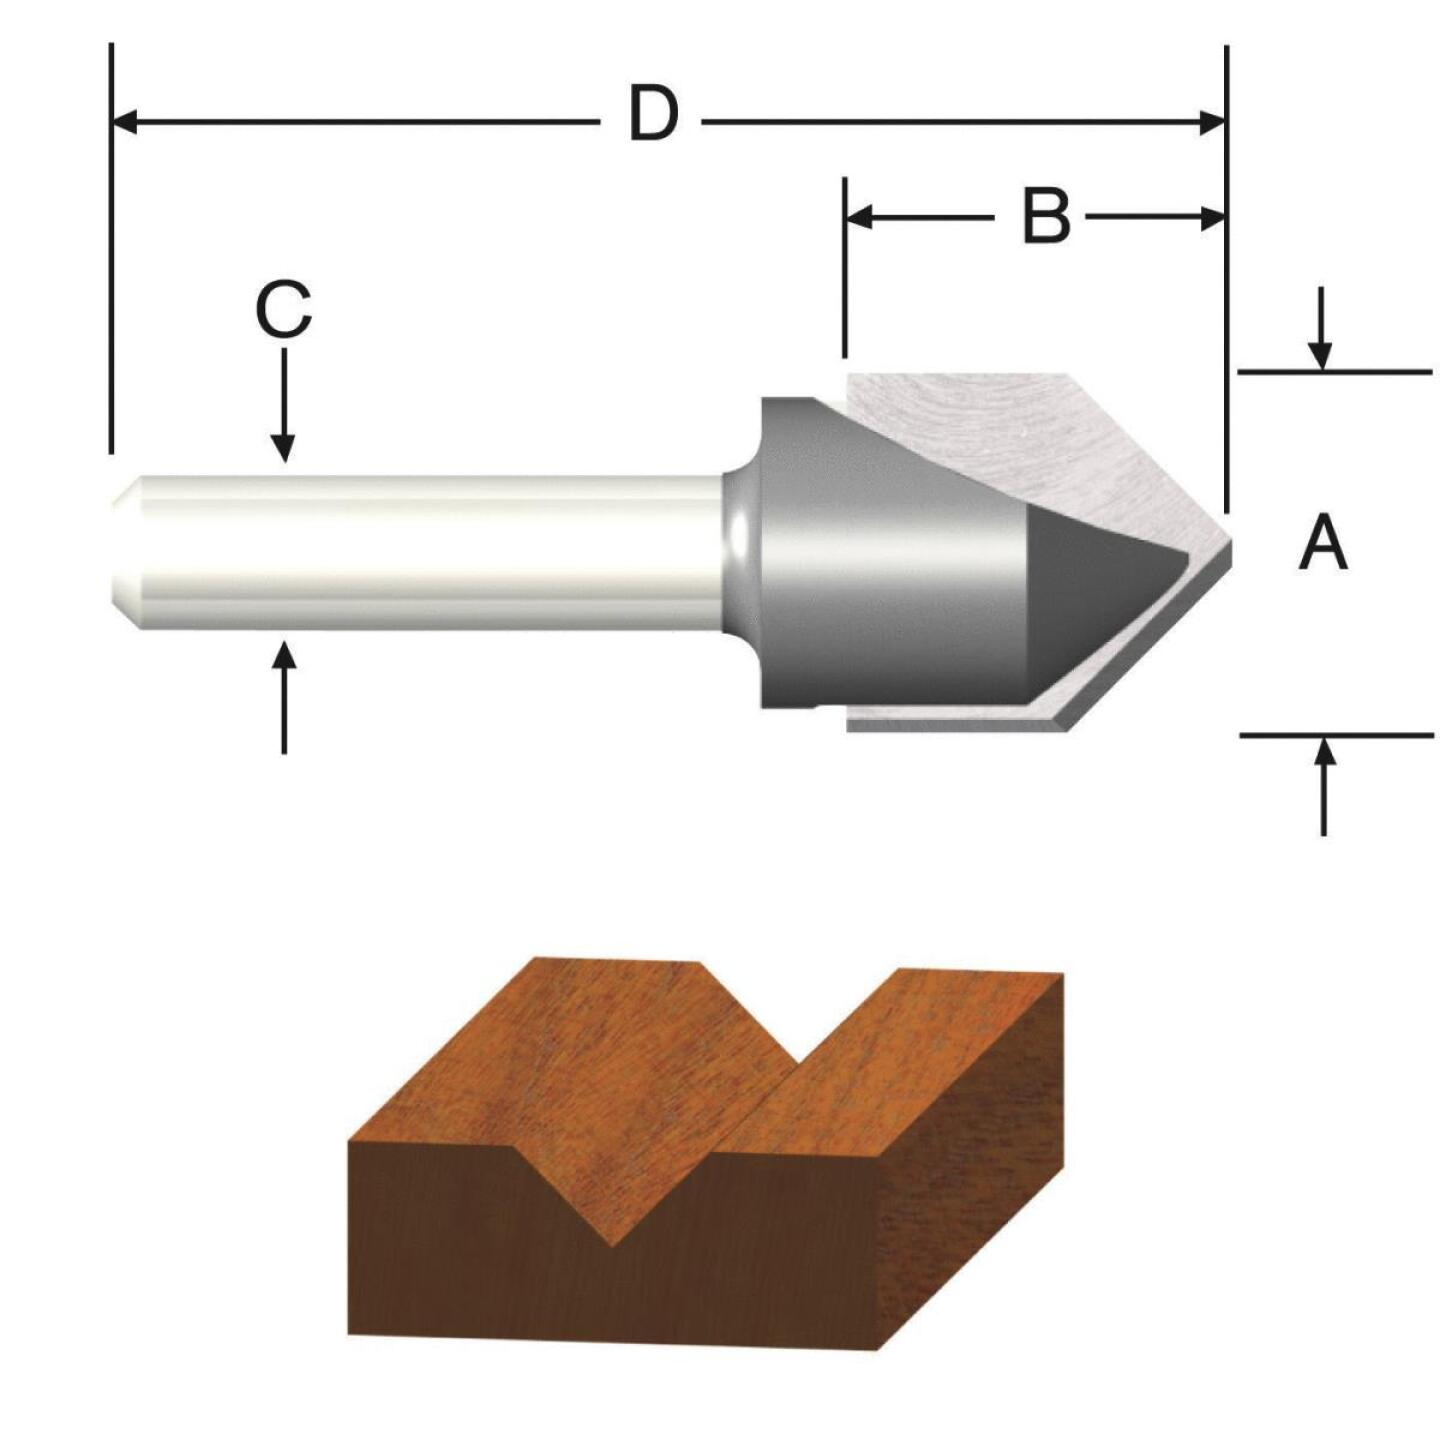 Vermont American Carbide Tip 60 Degree V-Groove Bit Image 1